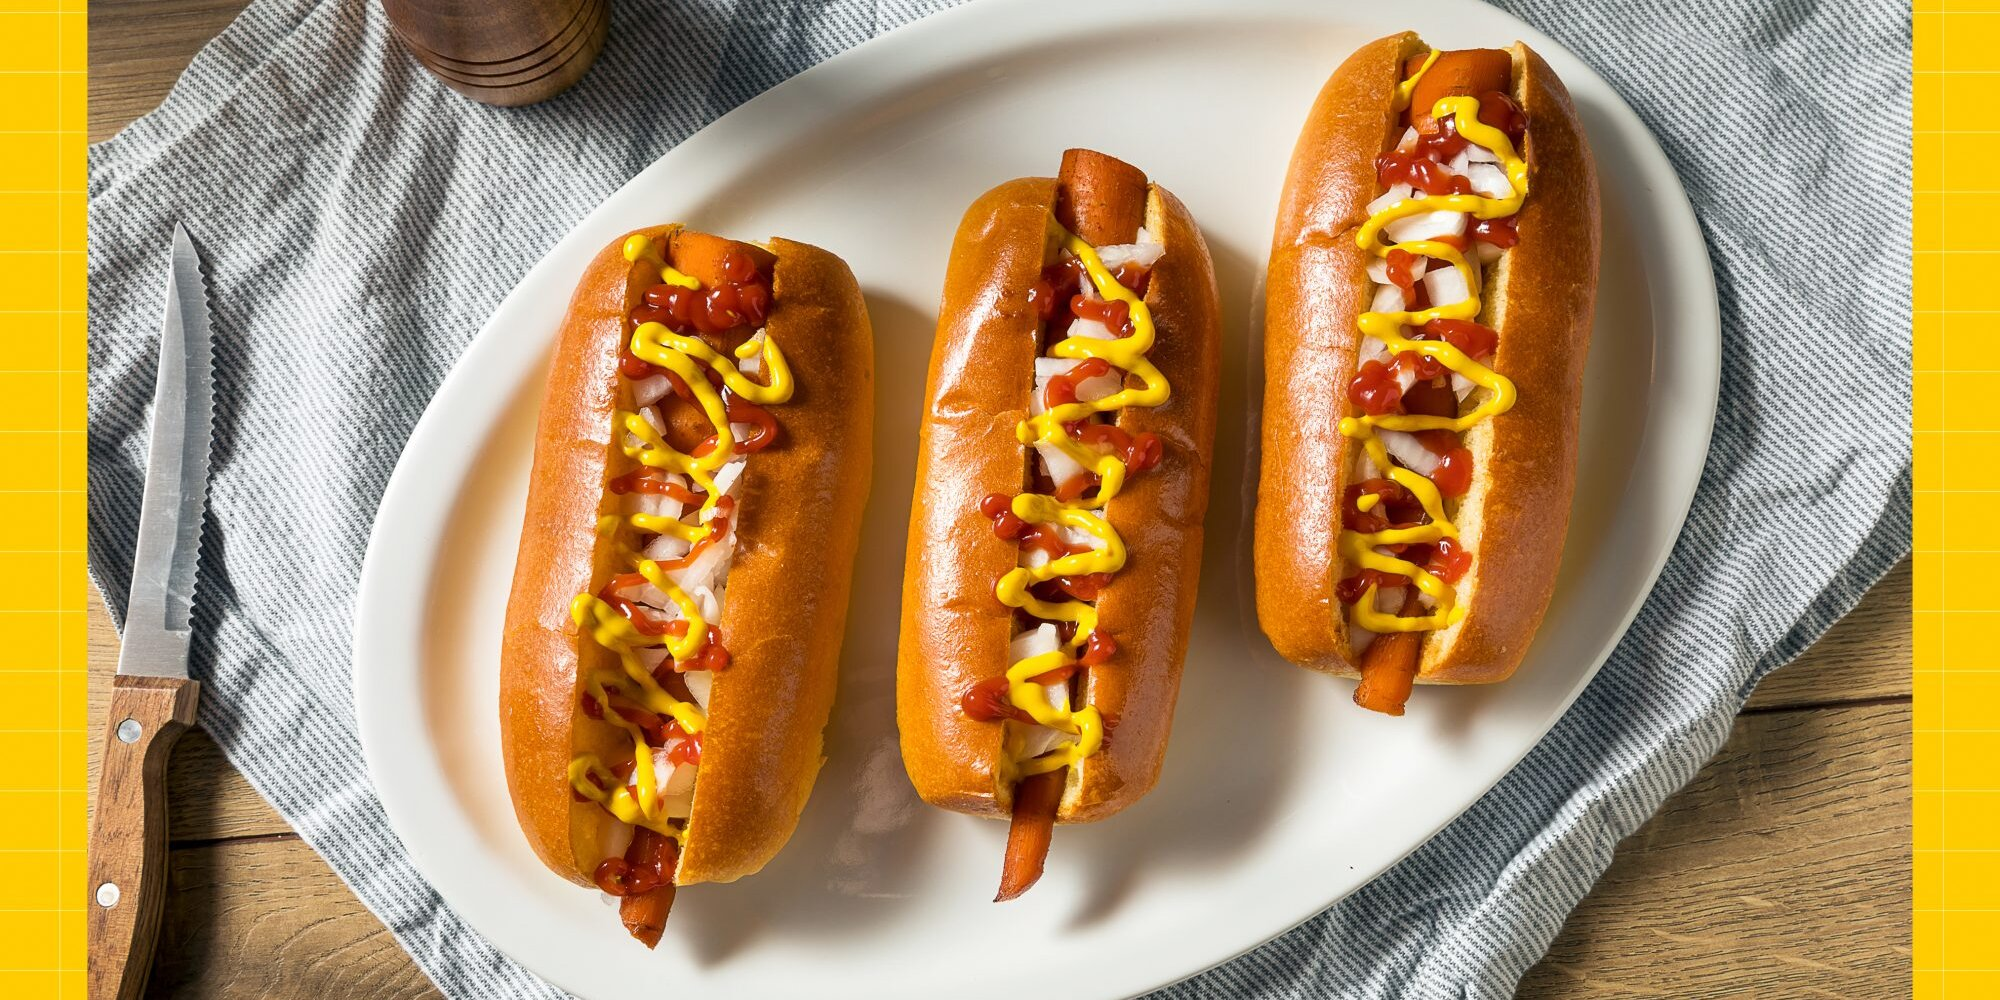 Tabitha Brown's Vegan Carrot Hot Dog Is Trending Again—and We're Still Obsessed